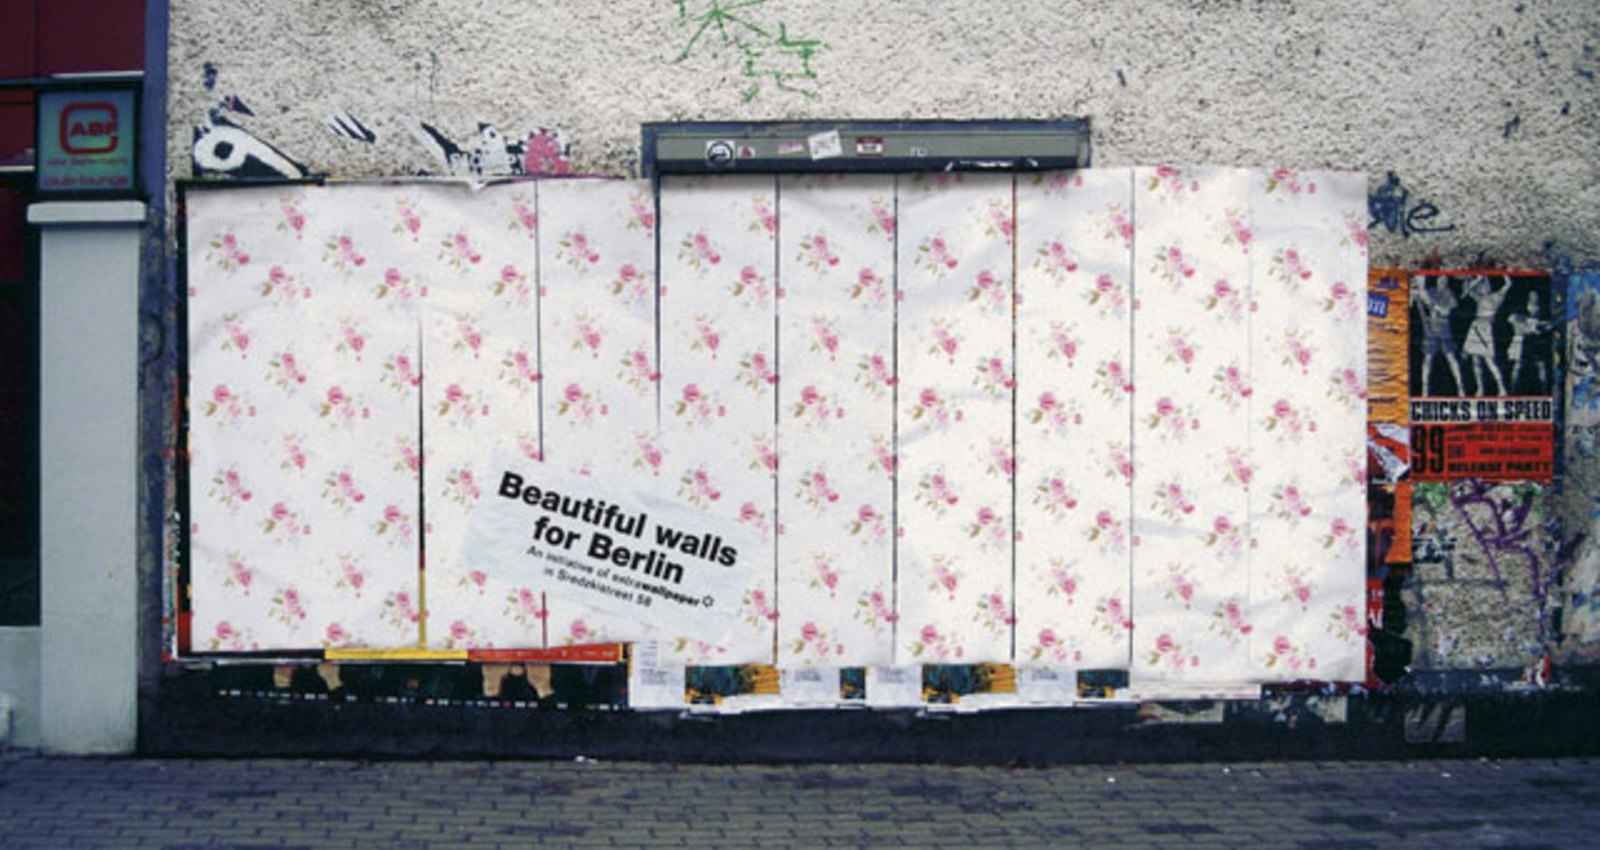 quote;Beautiful-walls-for-Berlinquote;- Blue-Yellowish-Ornaments, quote;Beautiful-walls-for-Berlinquote;-Stripes 'n' Flowers, quote;Beautiful-walls-for-Berlinquote;-Pink Roses